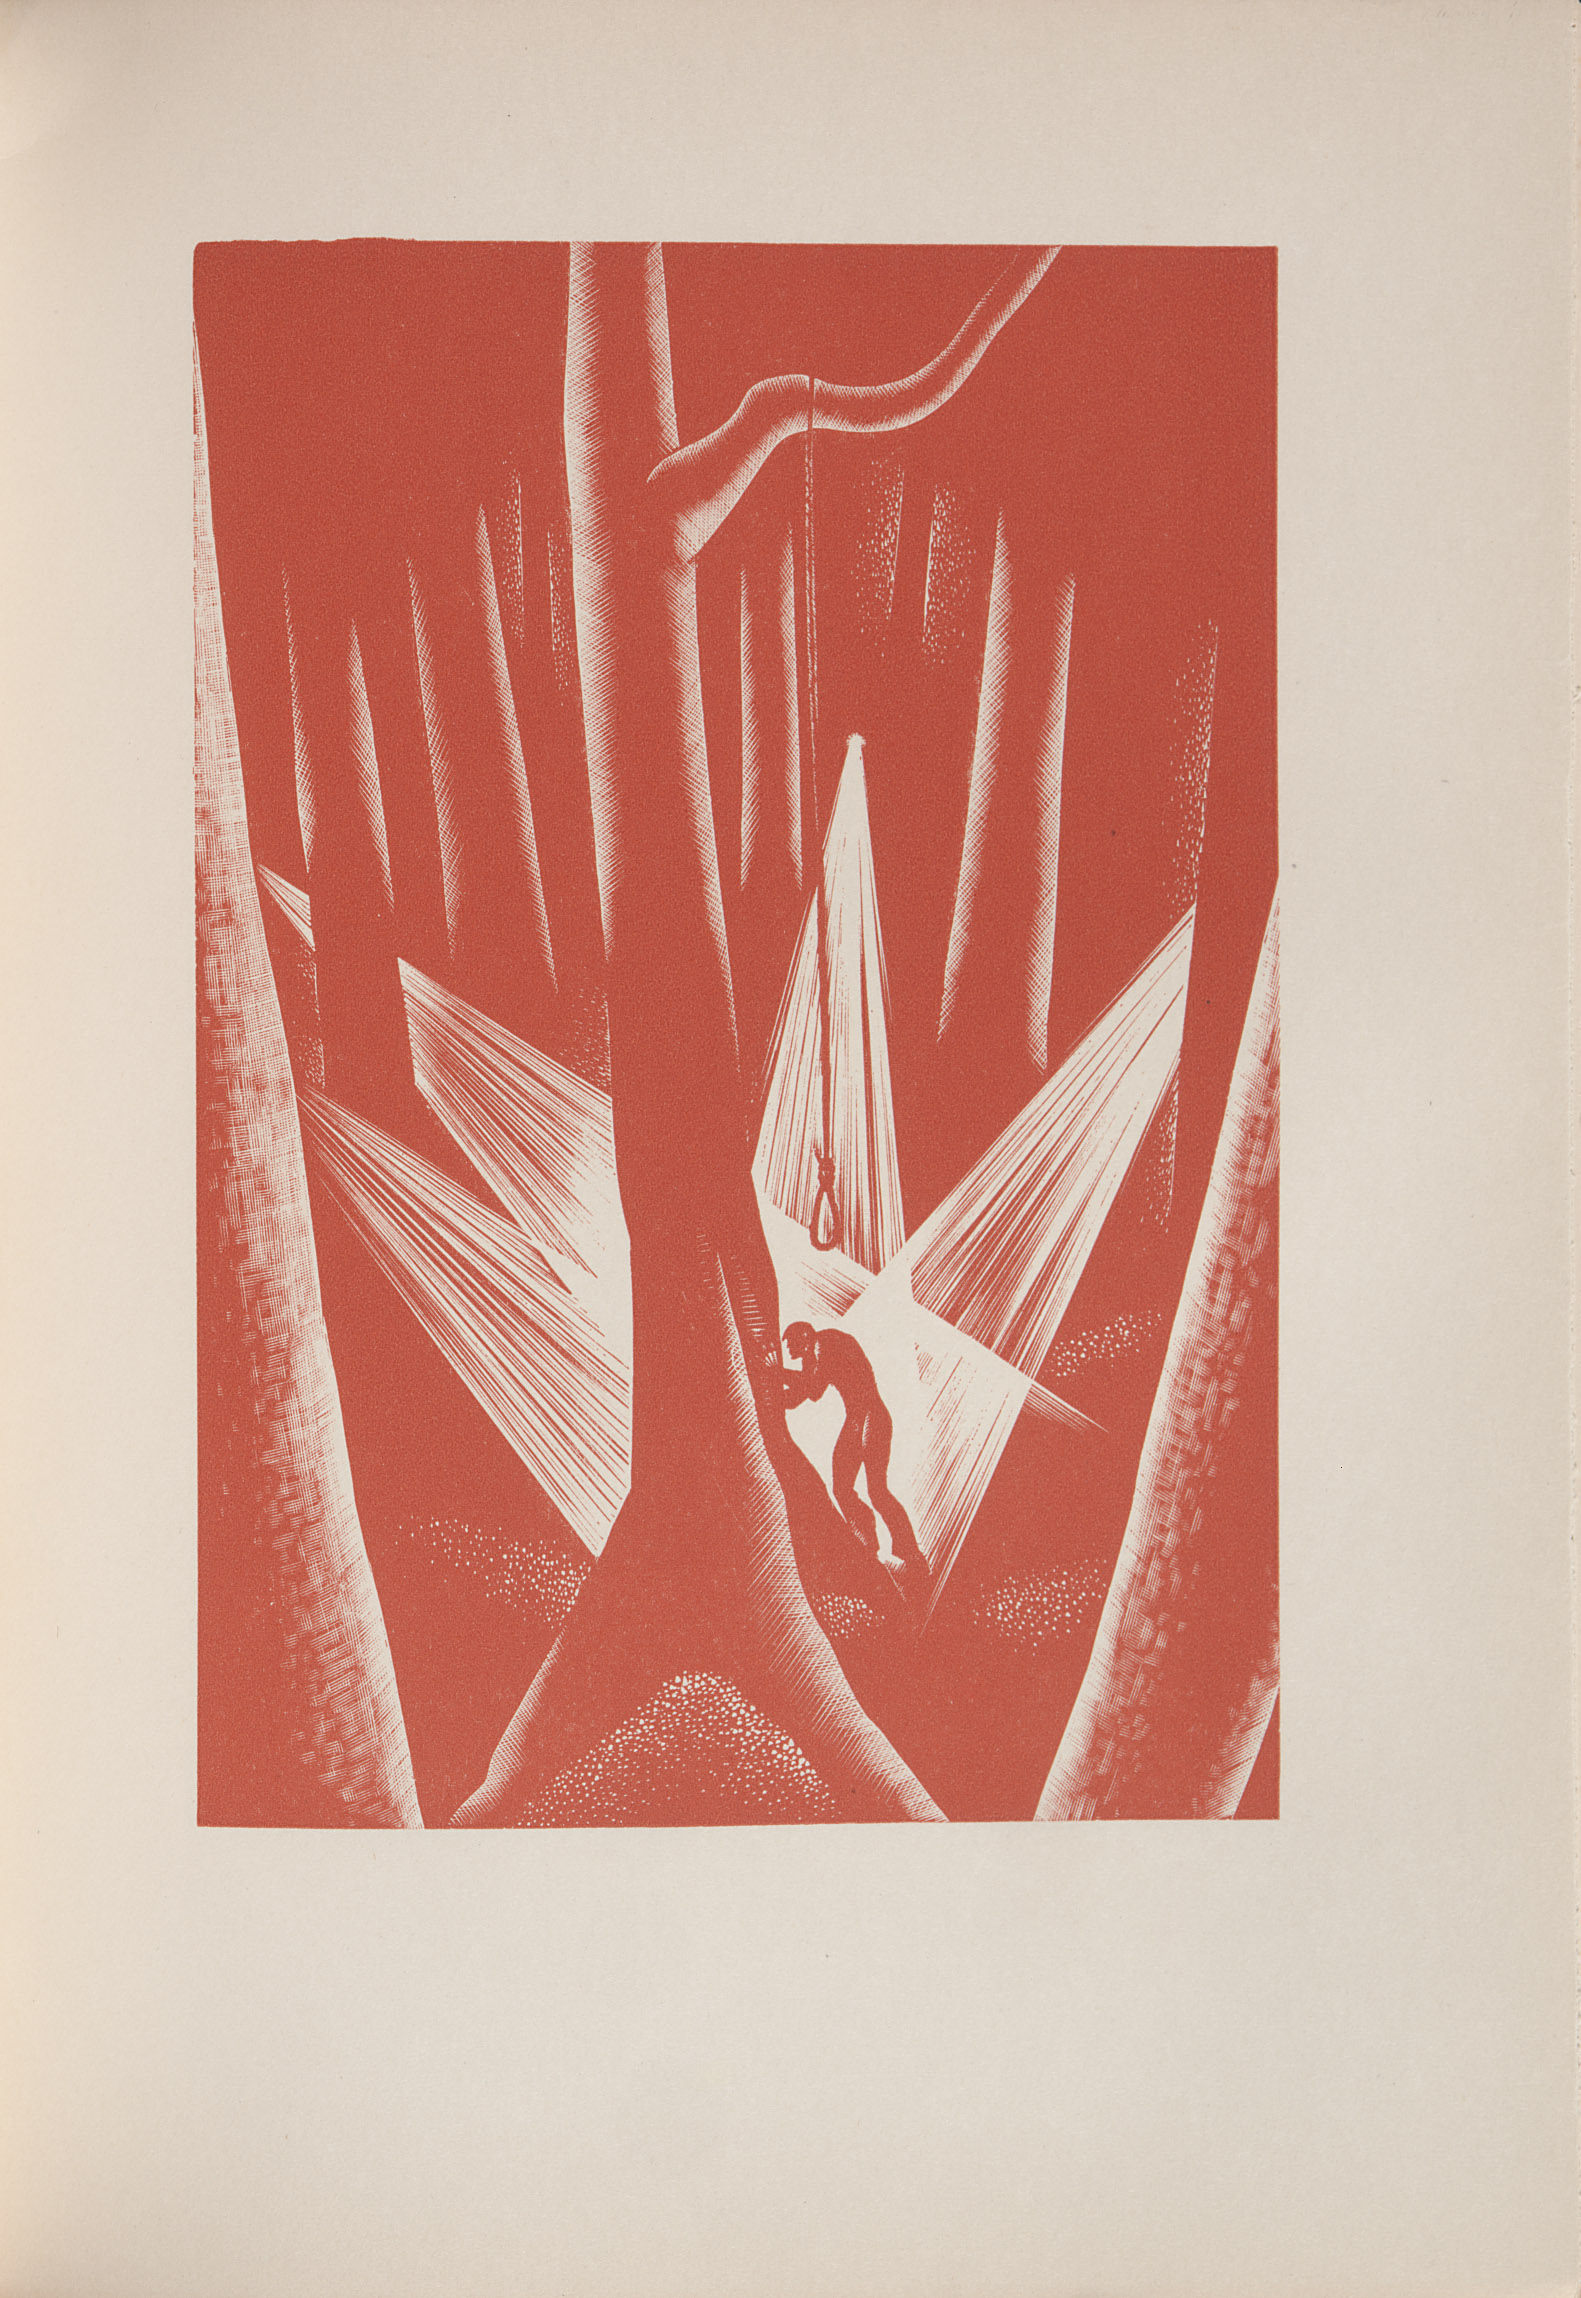 Lynd Ward, wood engraving from Wild Pilgrimage (1932) depicting part of the dream sequence.